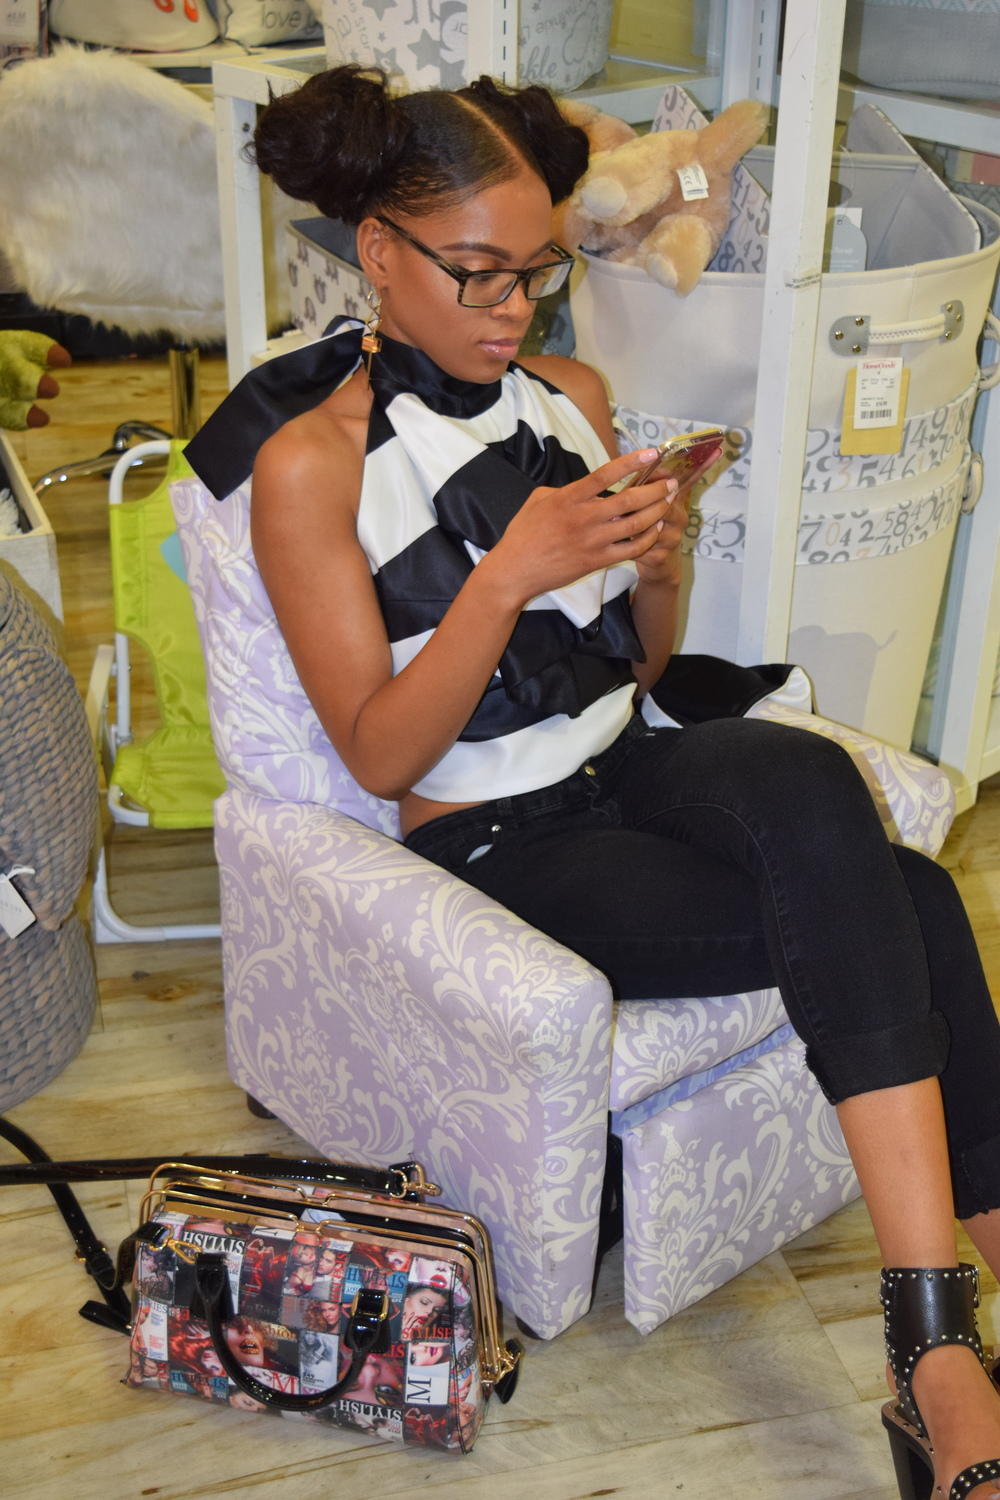 Why did I find this one in the kiddie section sitting in one of the baby chairs texting! Really BritBrat!